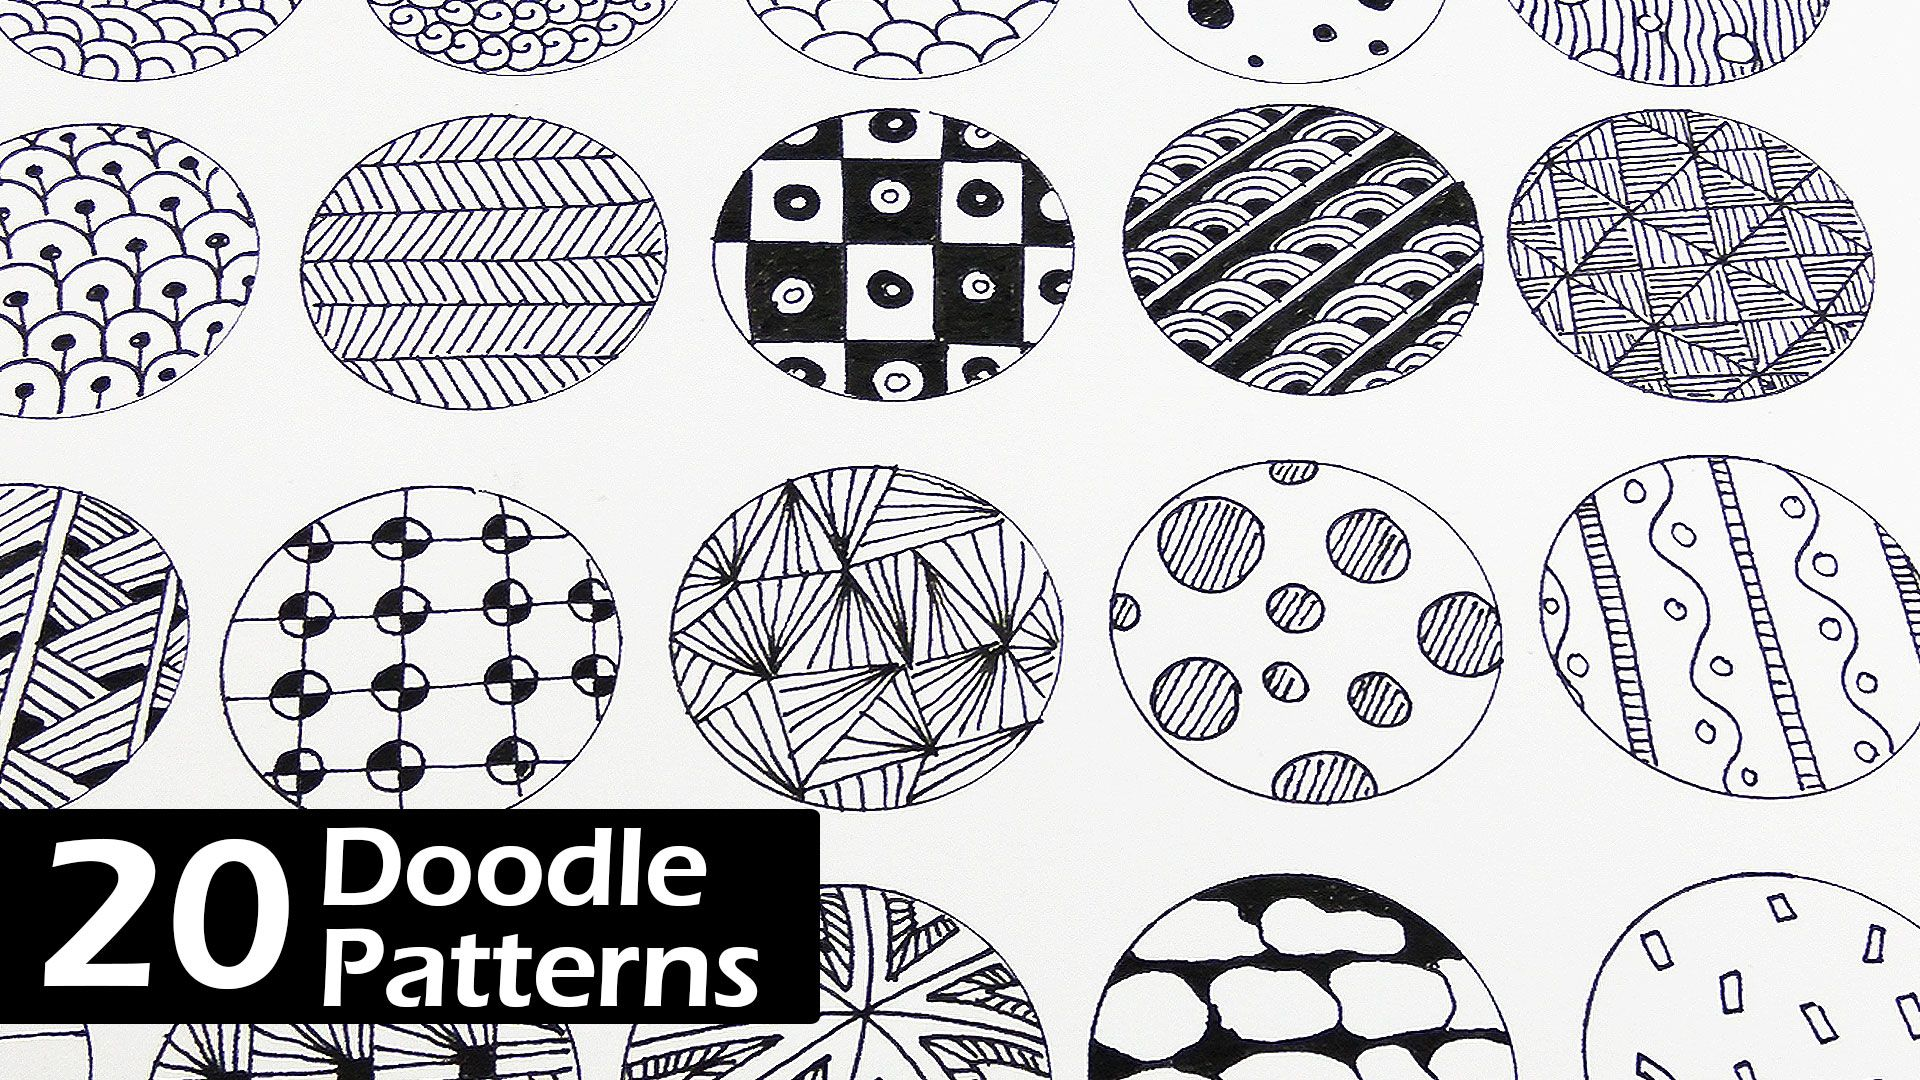 Pin by Craftylity on Doodle in 2019 | Zentangle patterns, Zentangle